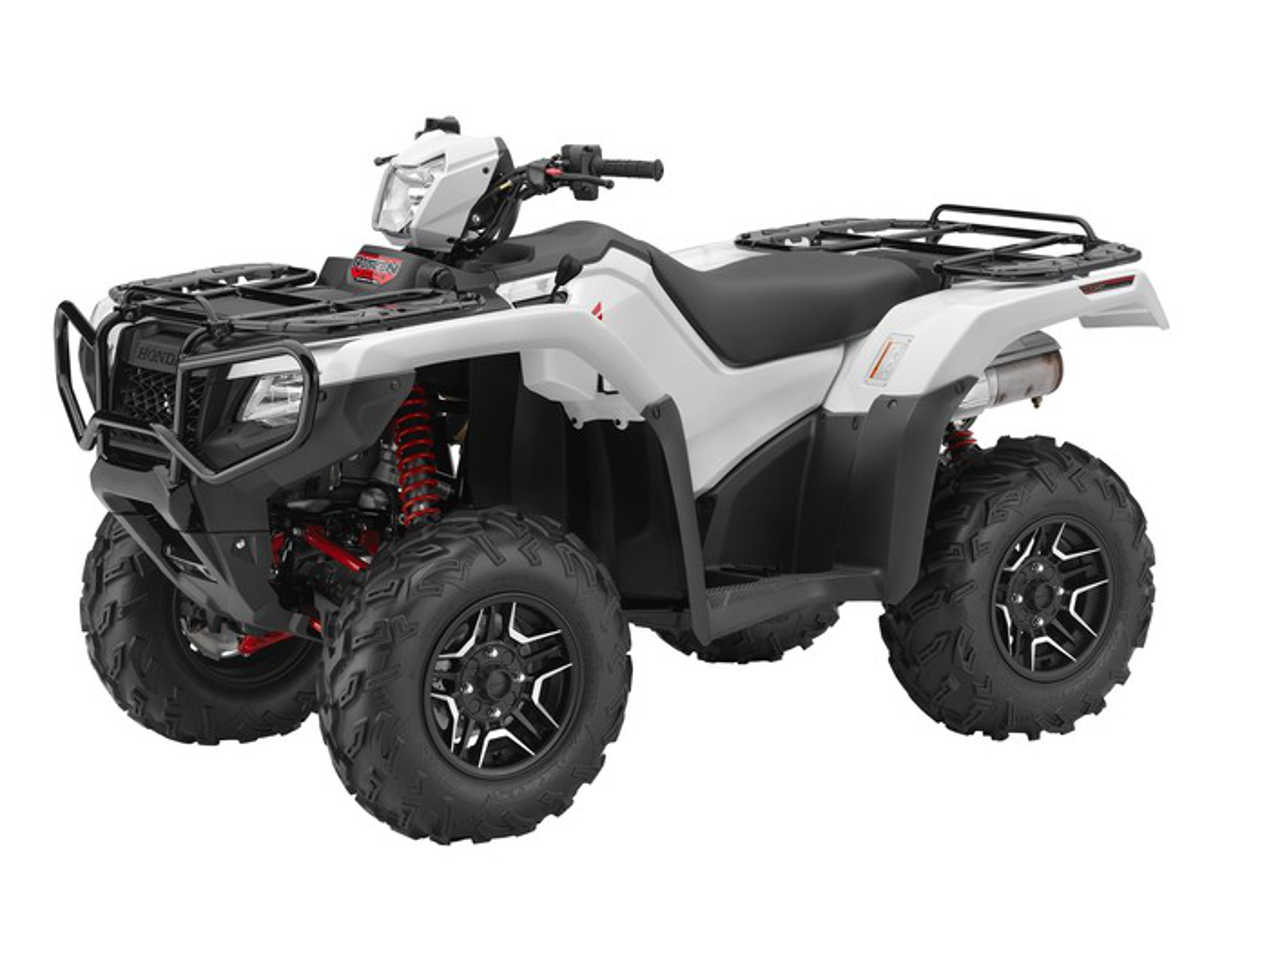 Hondas First 2016 Model Announcement Features IRS Equipped ATVs